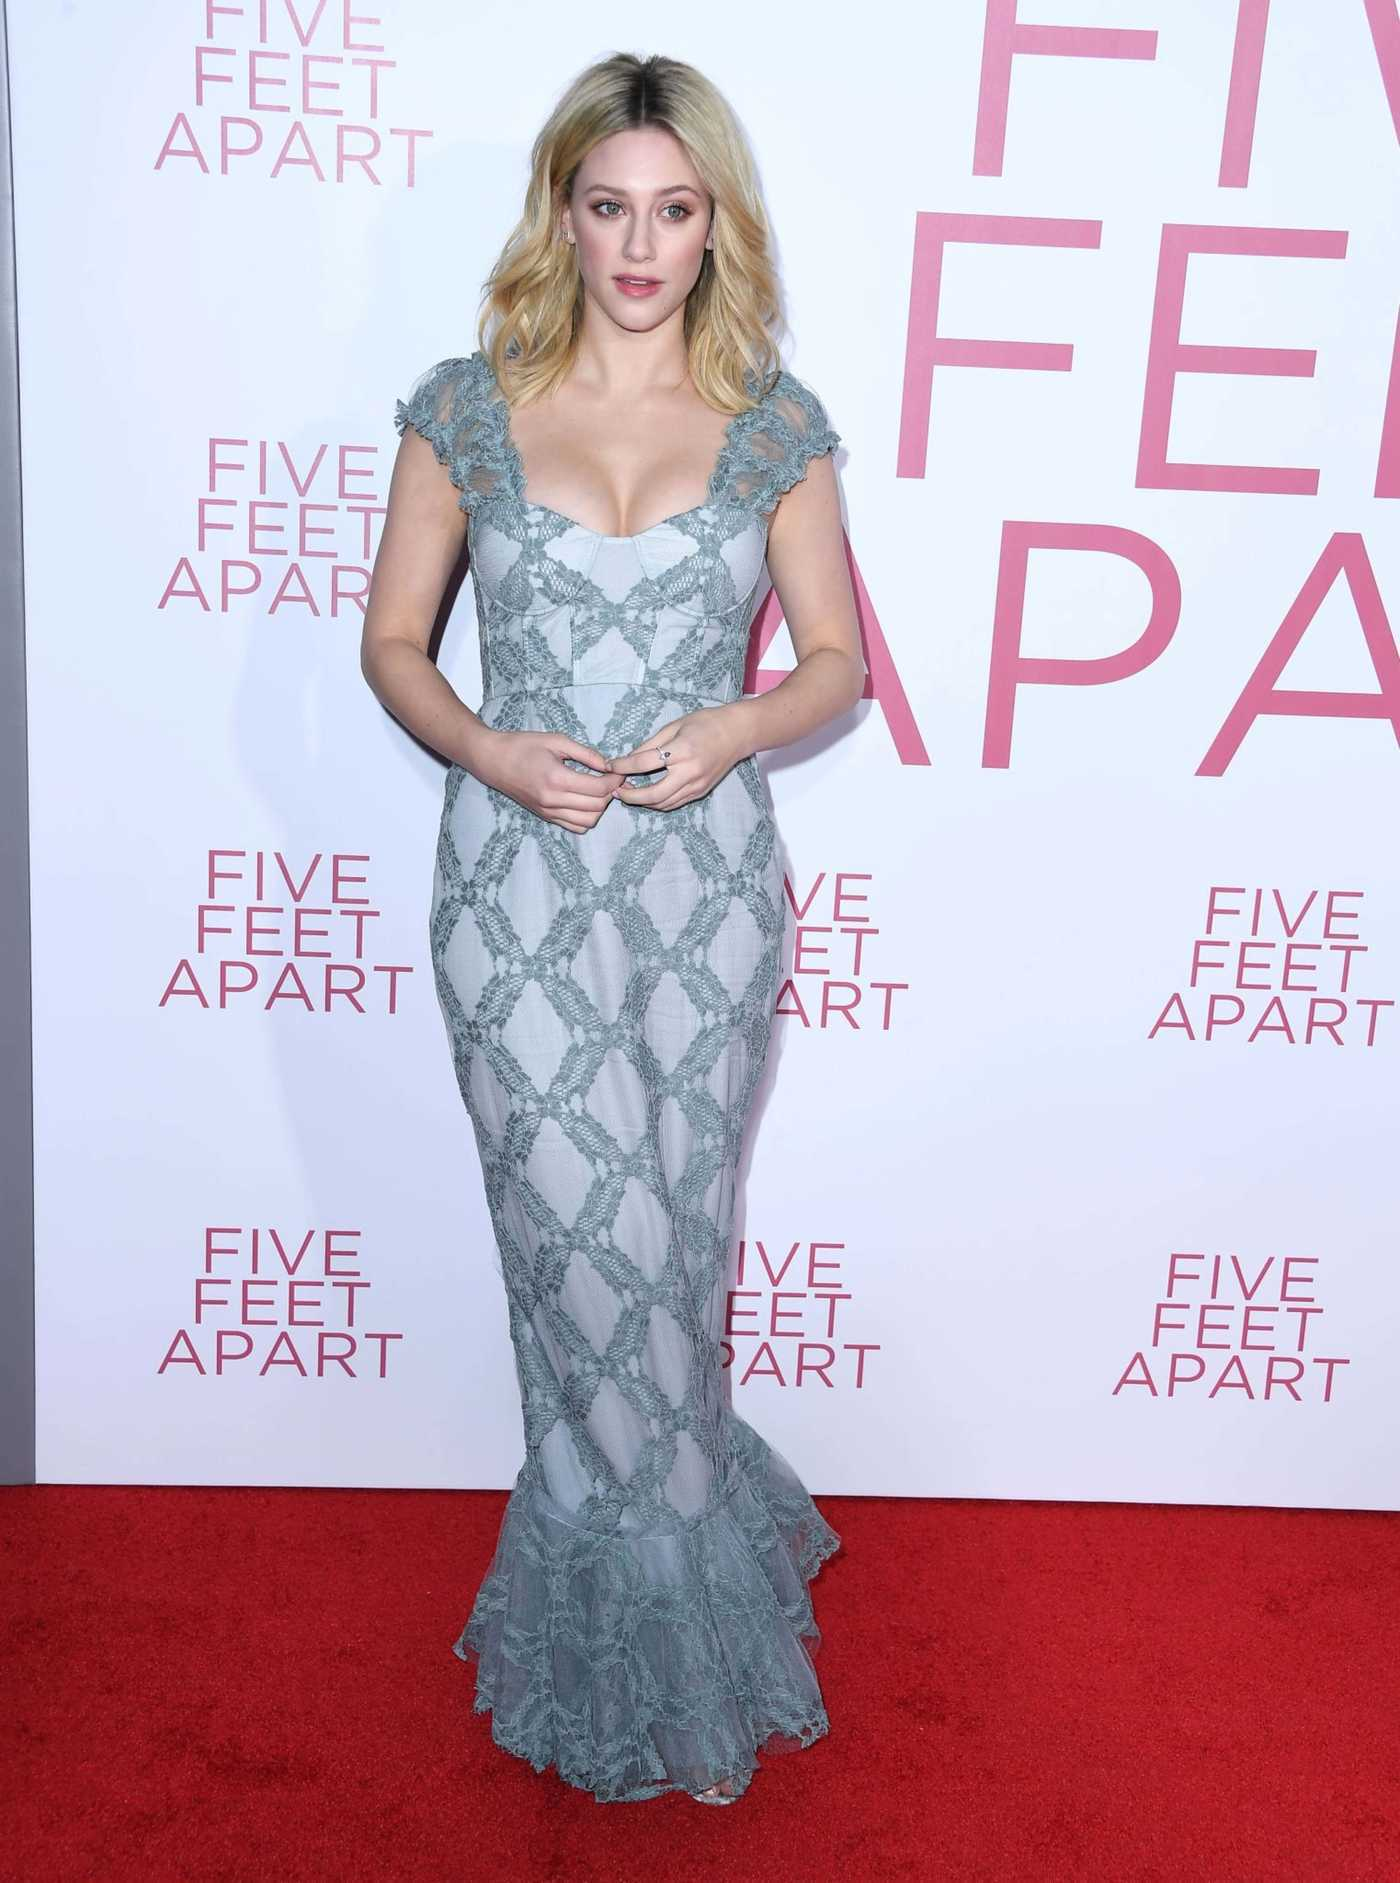 Lili Reinhart Attends Five Feet Apart Premiere in LA 03/07/2019